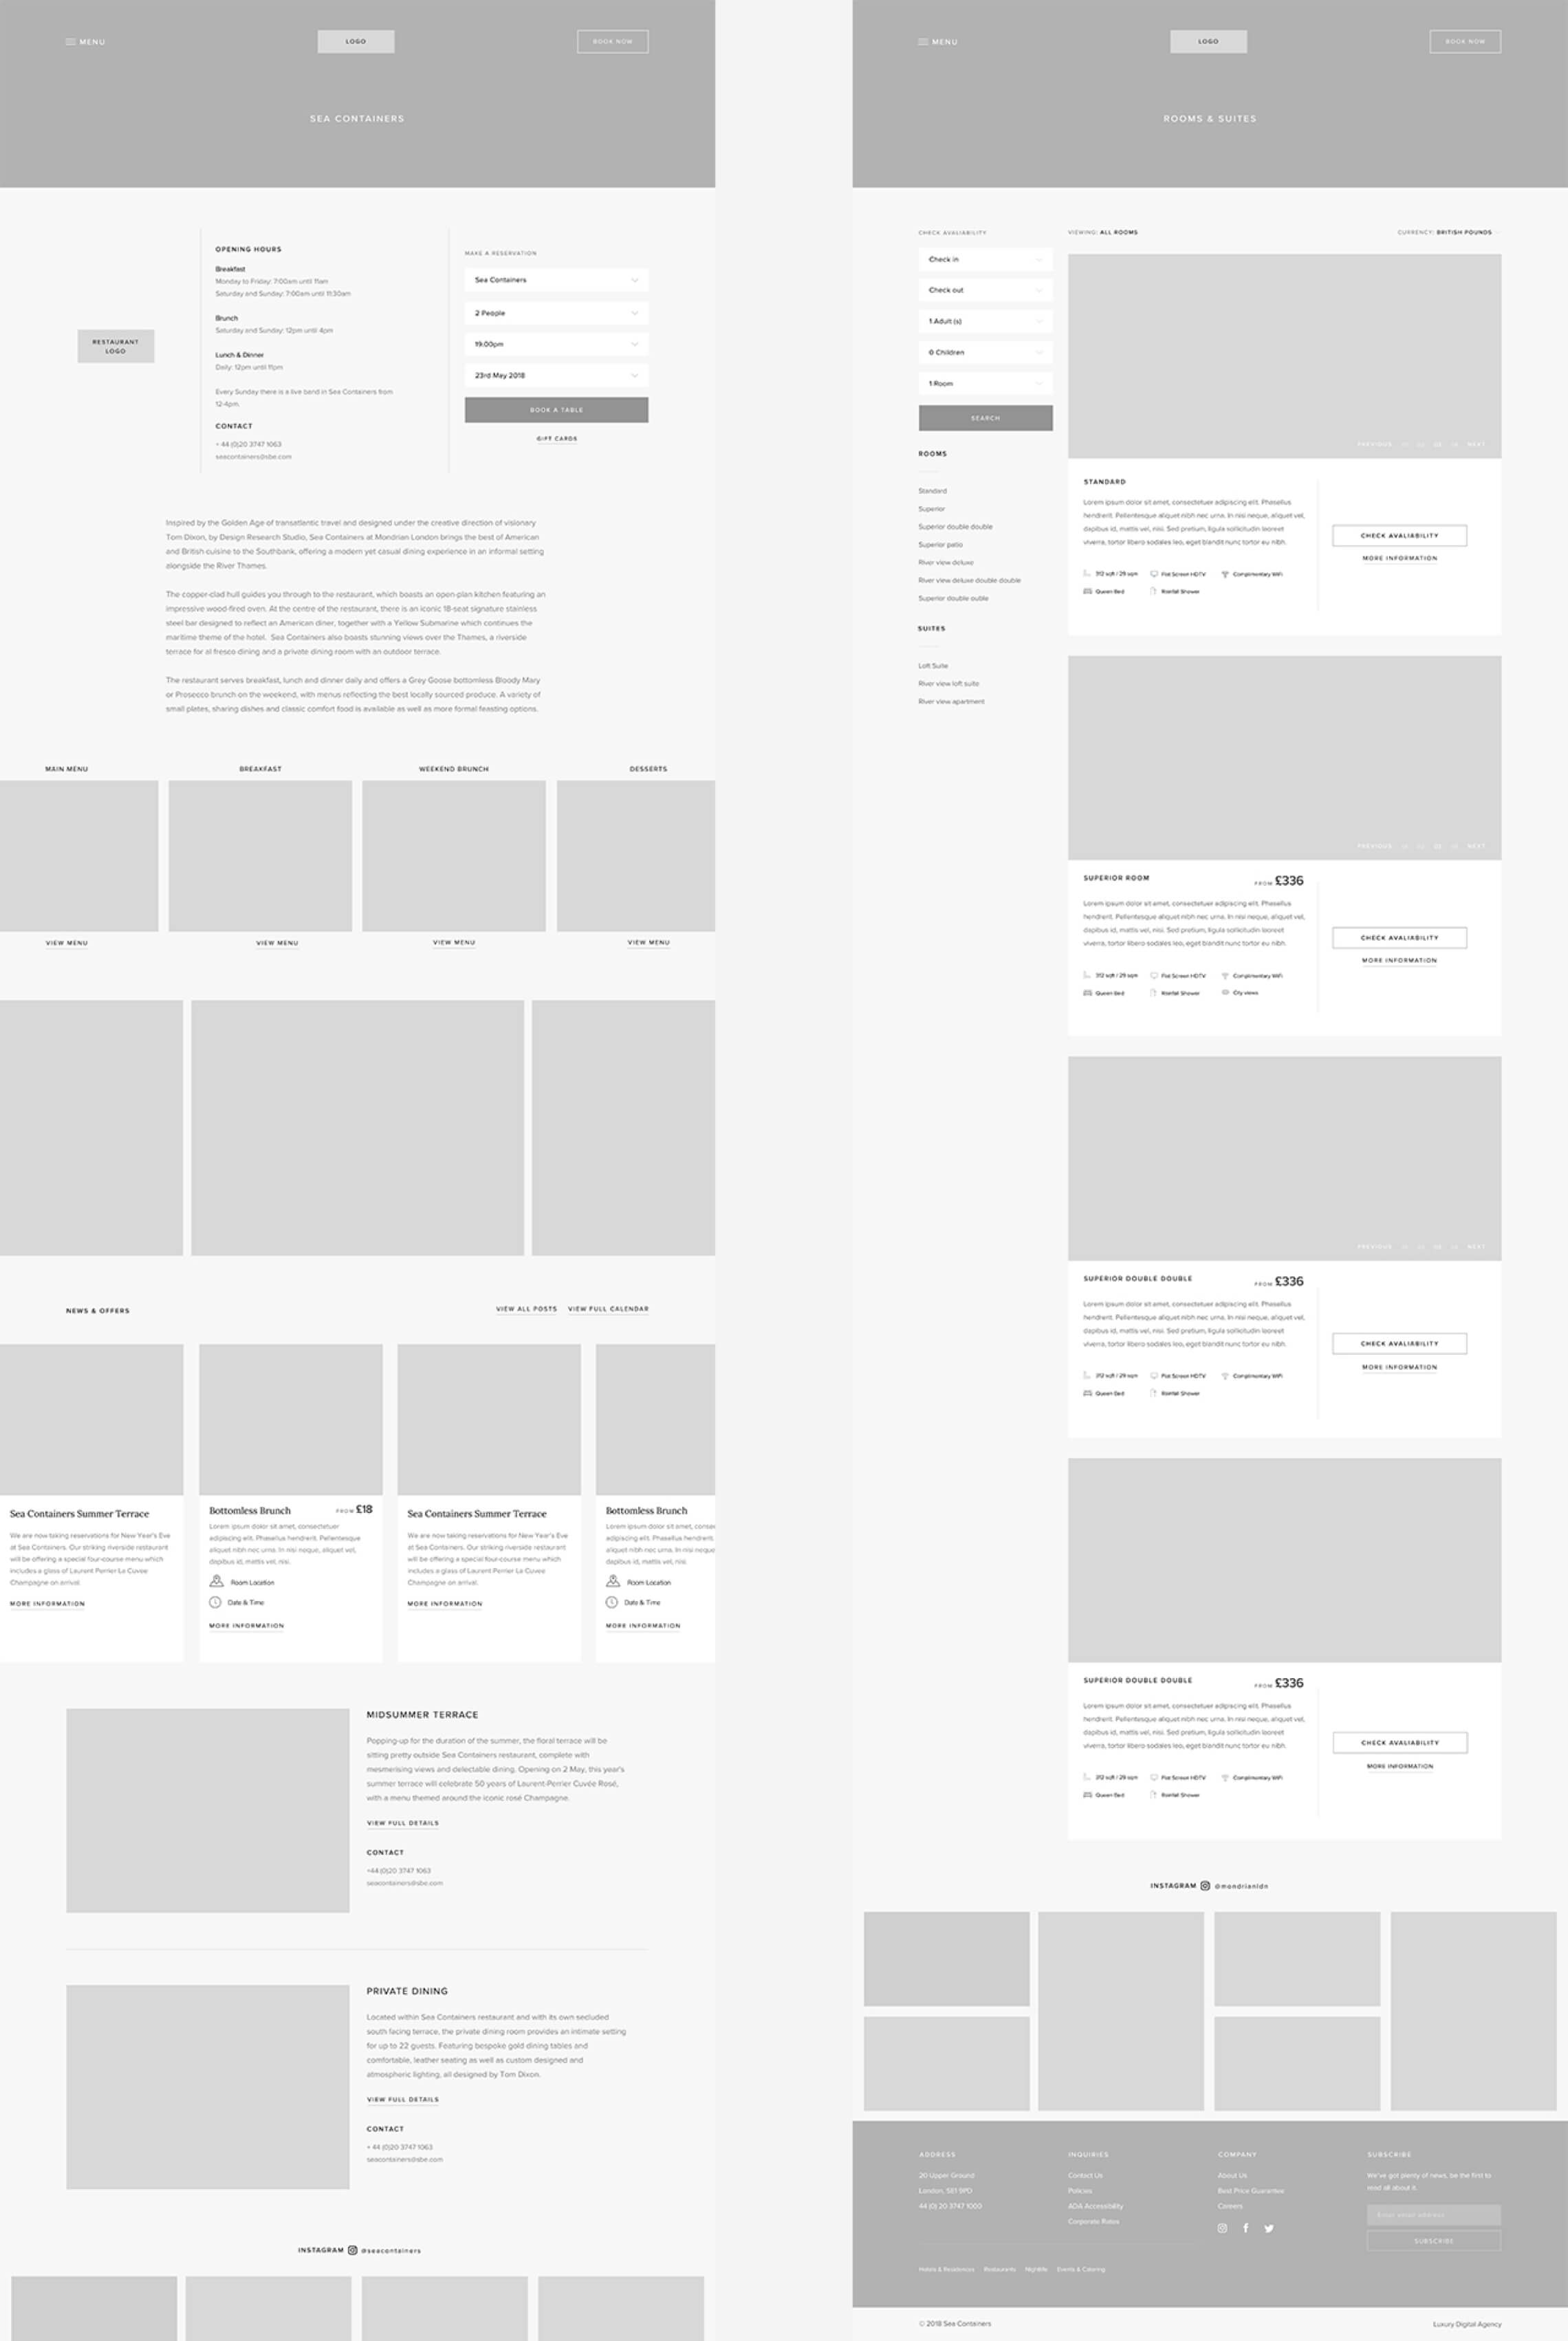 sea containers wireframe mockup